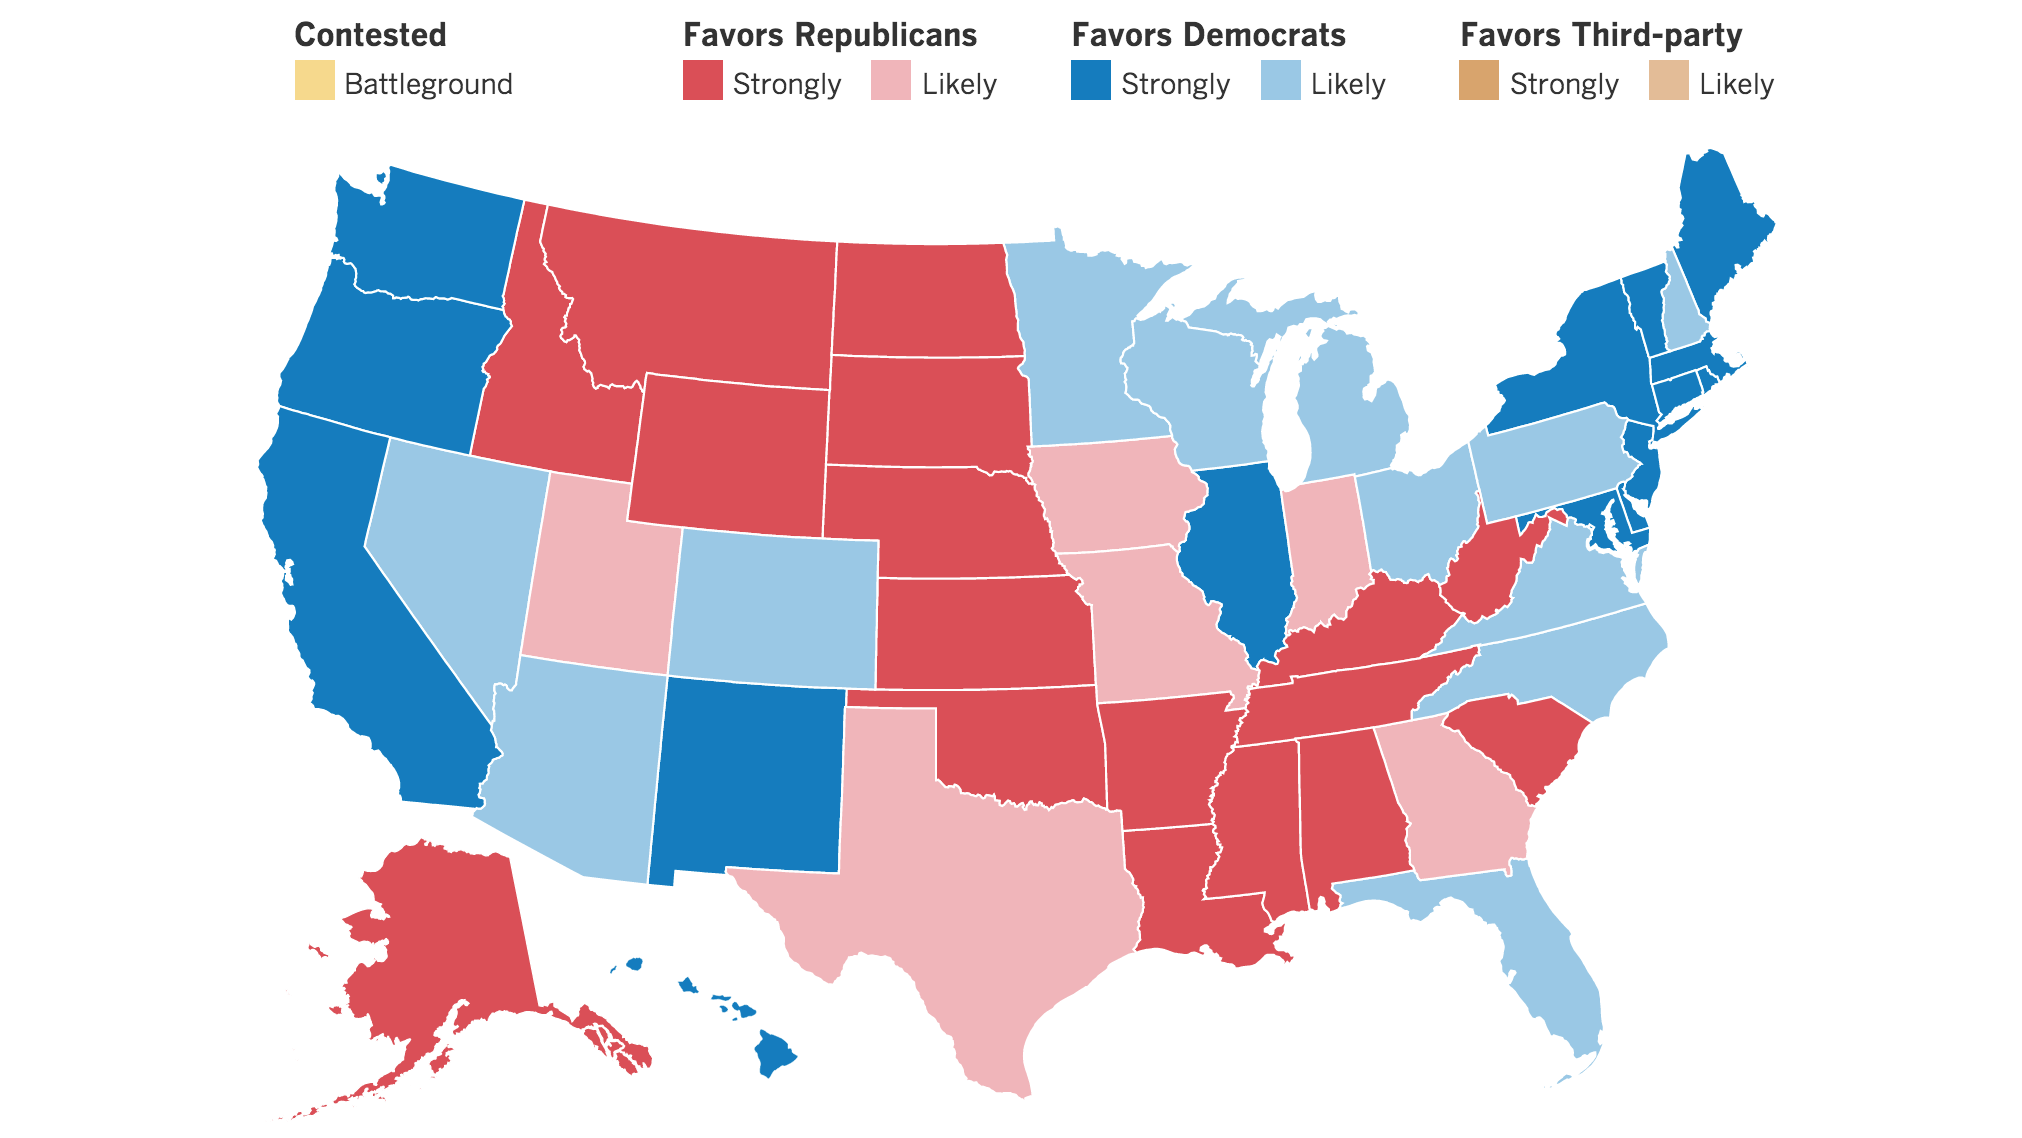 Trump Won States Map.We Ve Updated Our Electoral Map More States Move Away From Trump